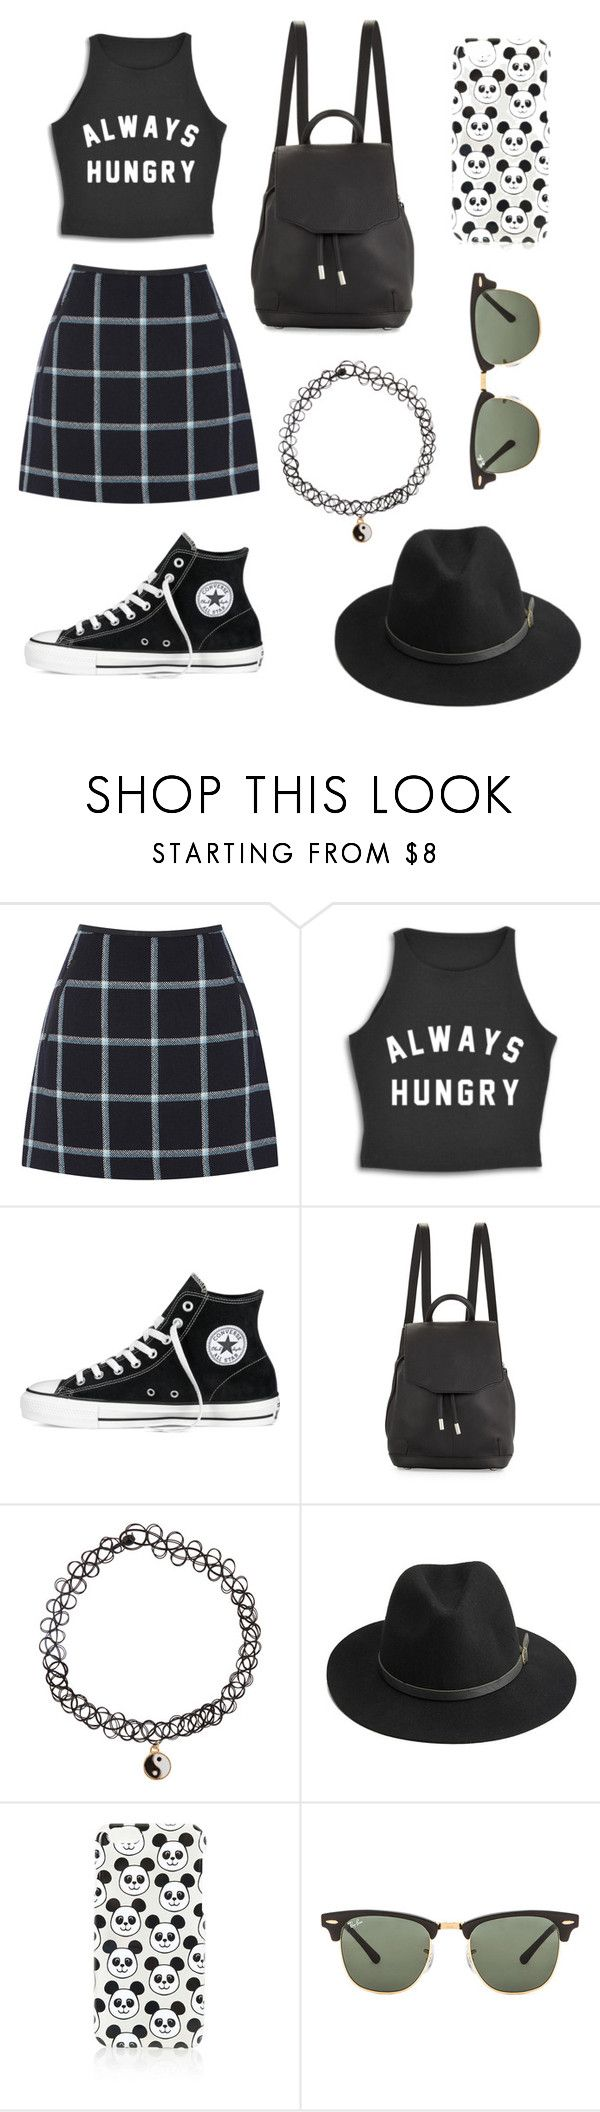 What are some hipster clothing stores